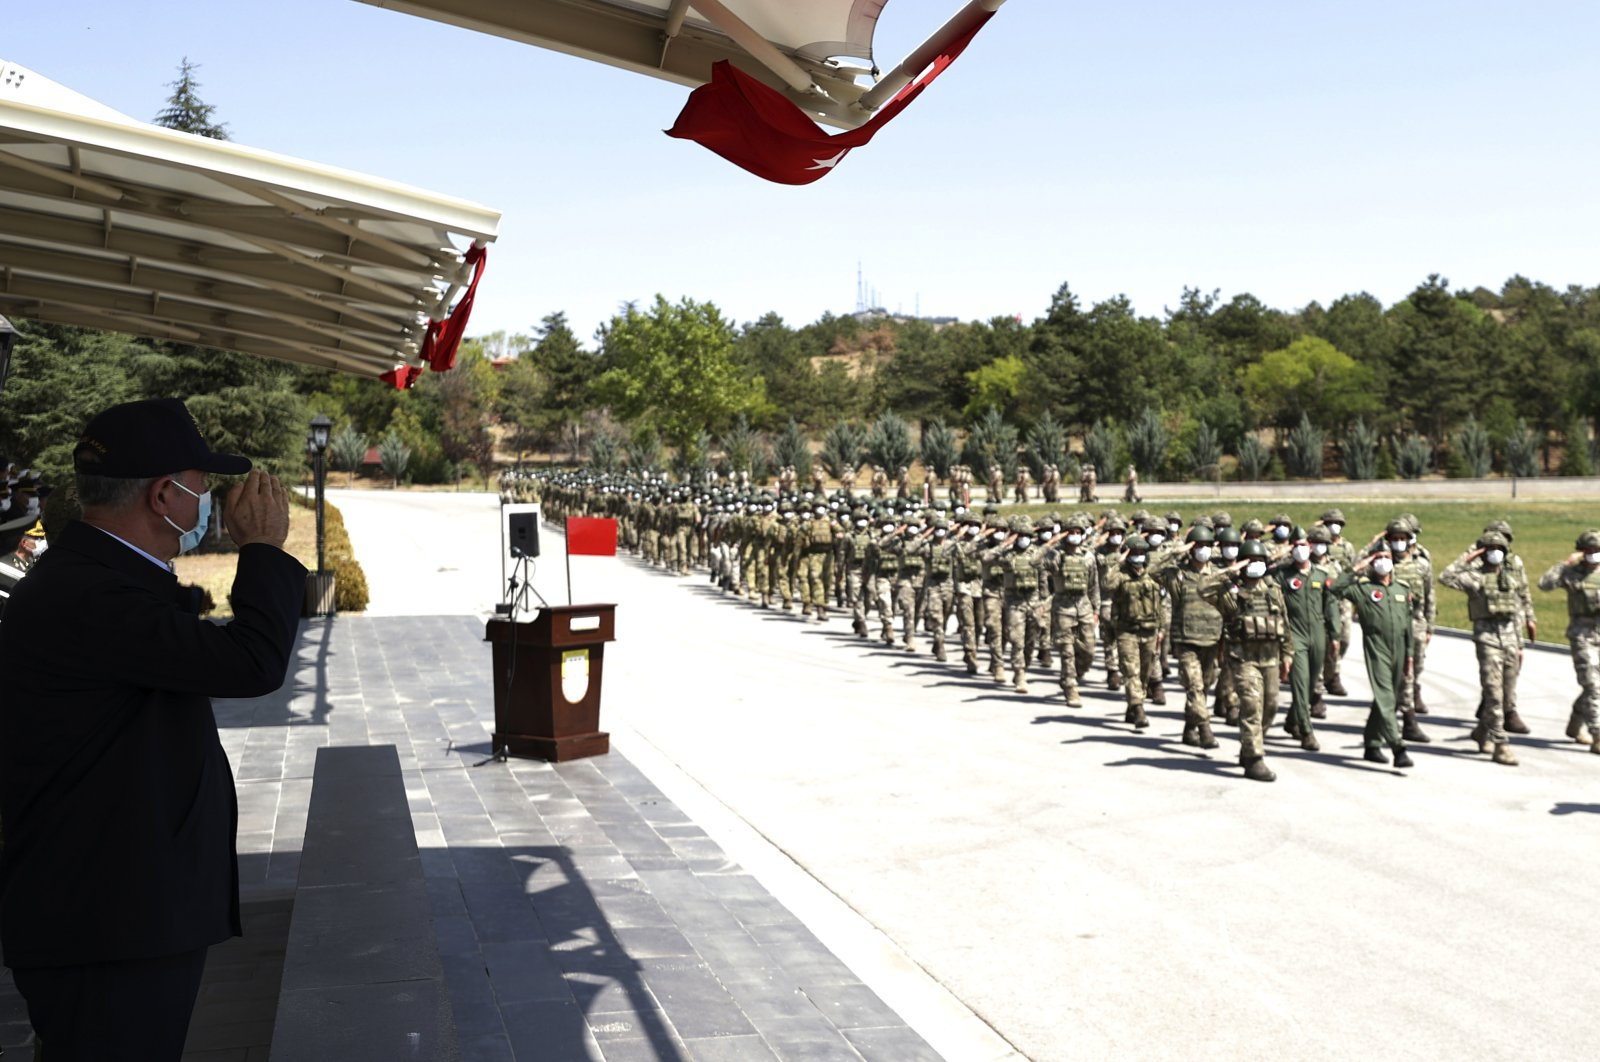 Defense Minister Hulusi Akar salutes Turkish troops who were operating Kabul Hamid Karzai International Airport in Afghanistan, during a ceremony at Ankara Esenboğa Airport, Turkey, Aug. 28, 2021. (AP File Photo)